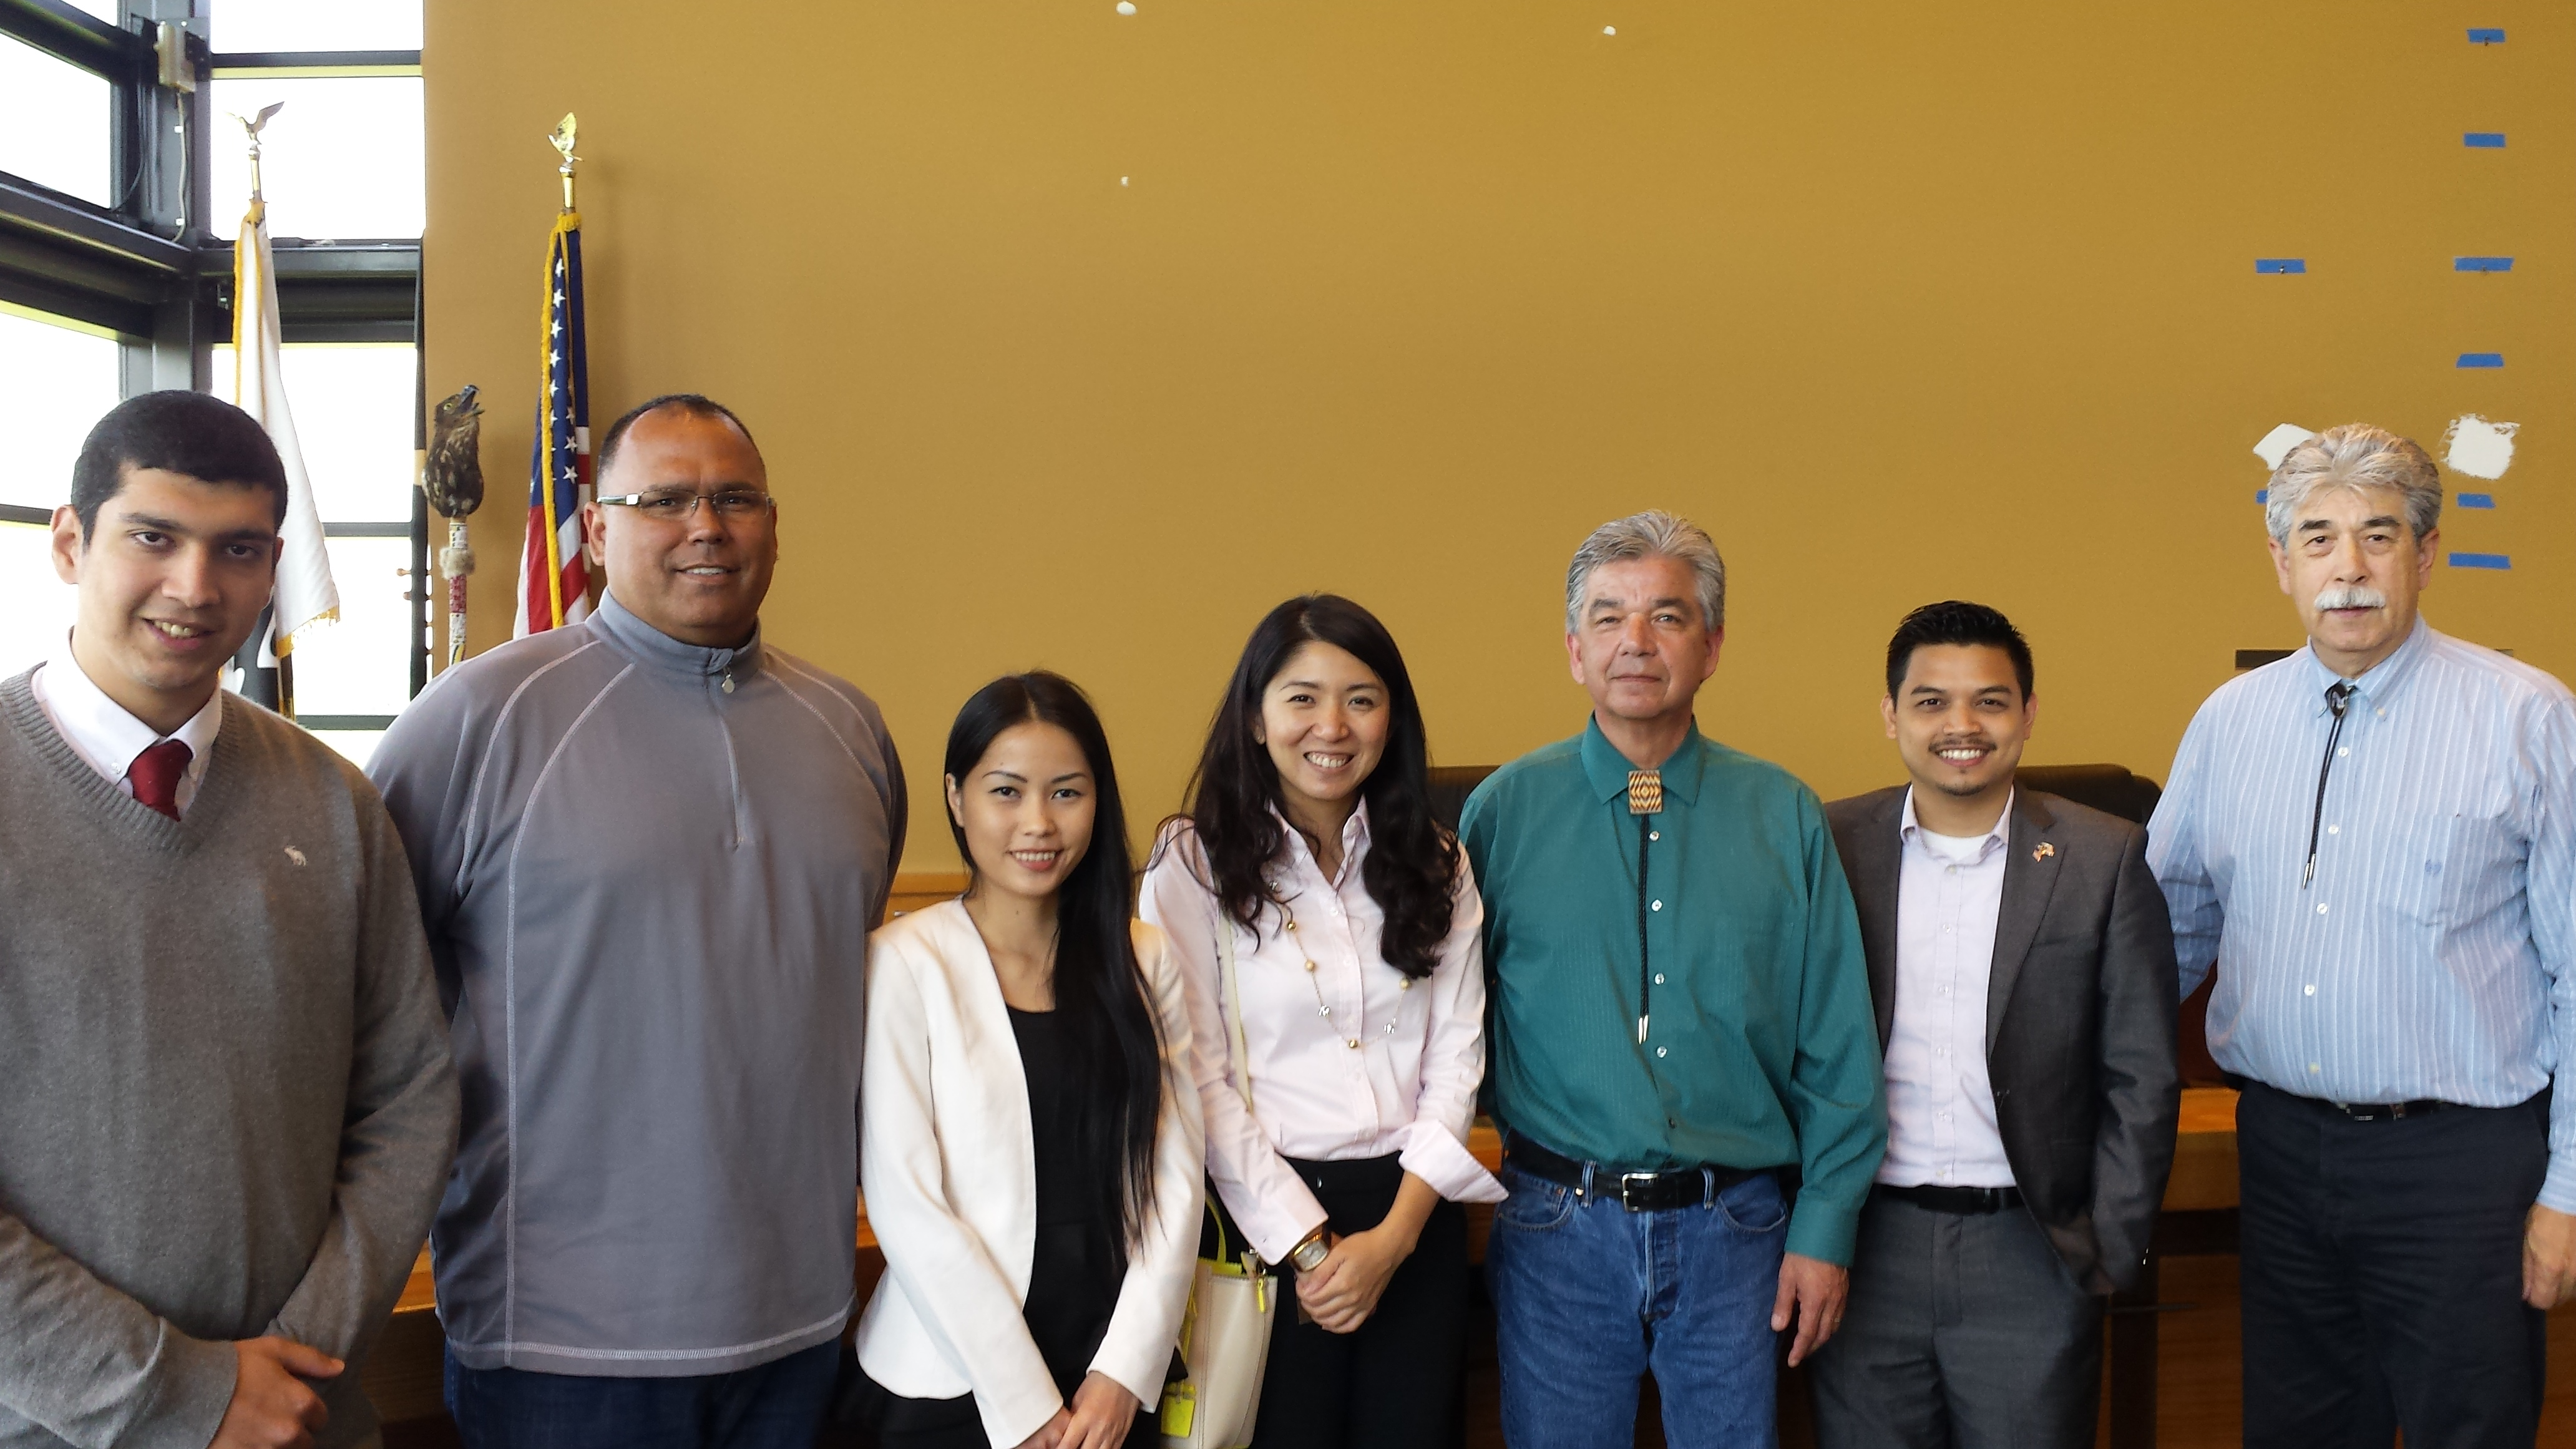 Fellows meeting with members of the Tulalip tribe